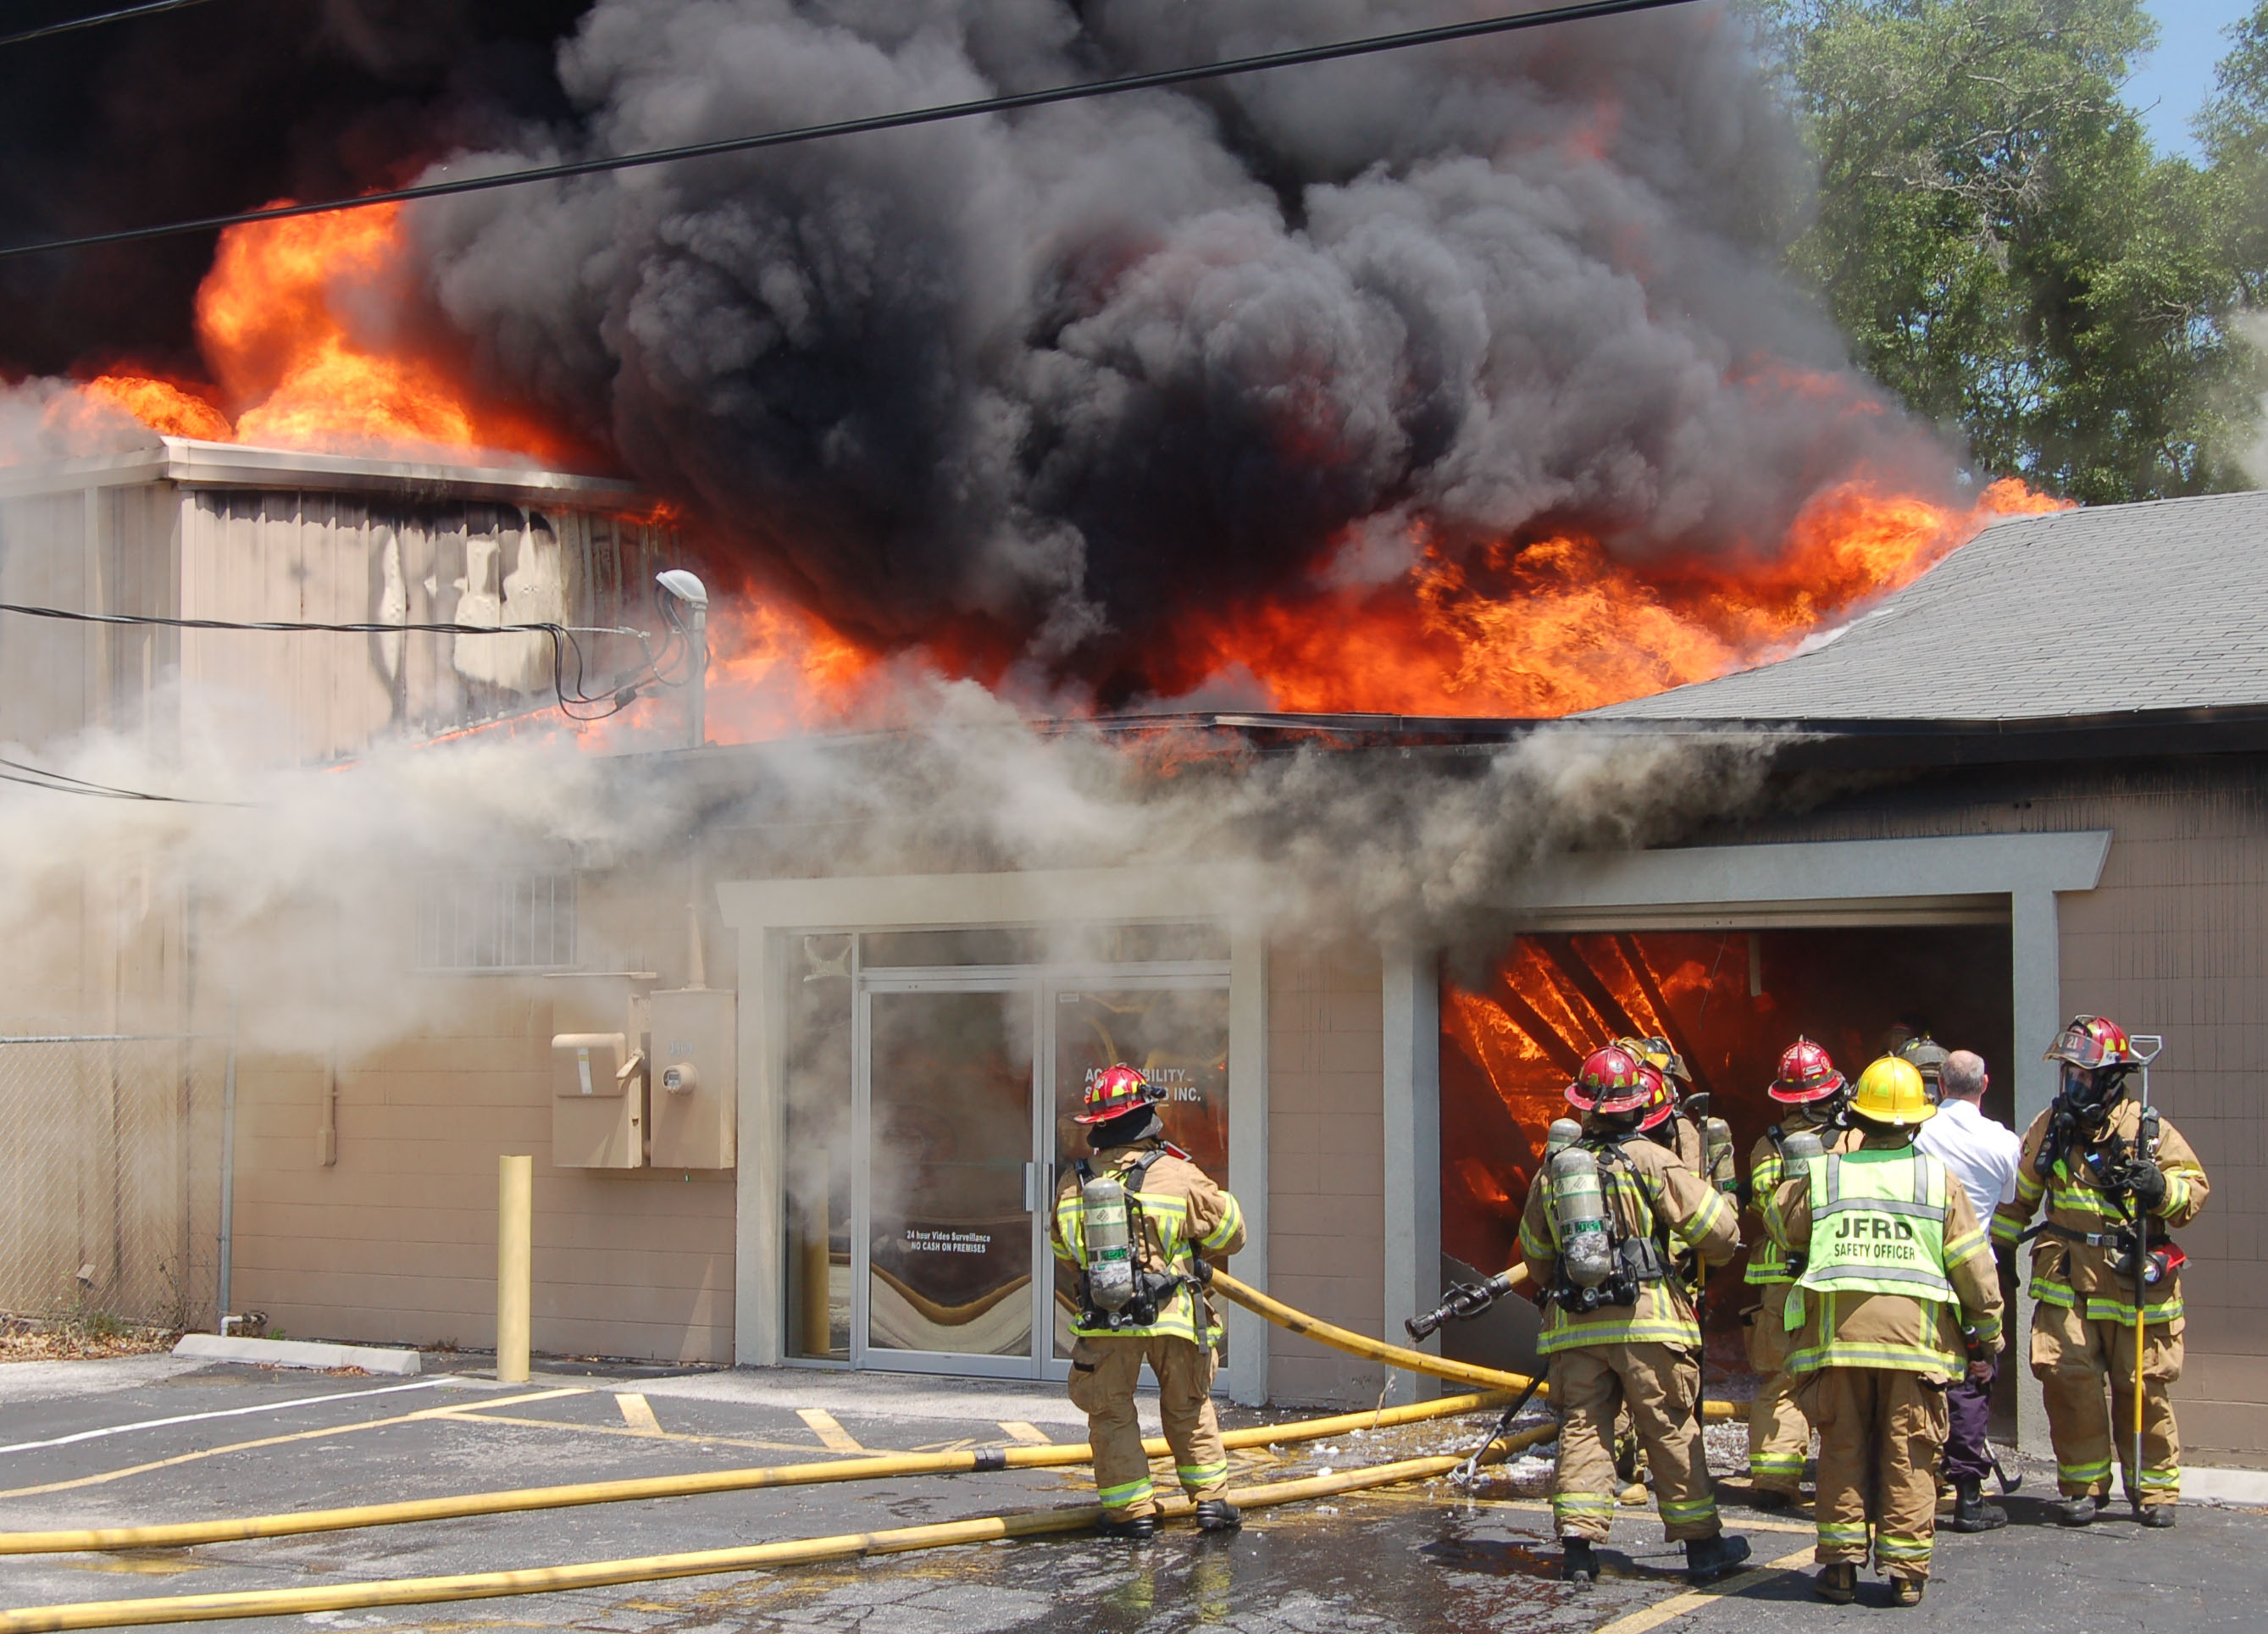 warehousefirejc04.jpg